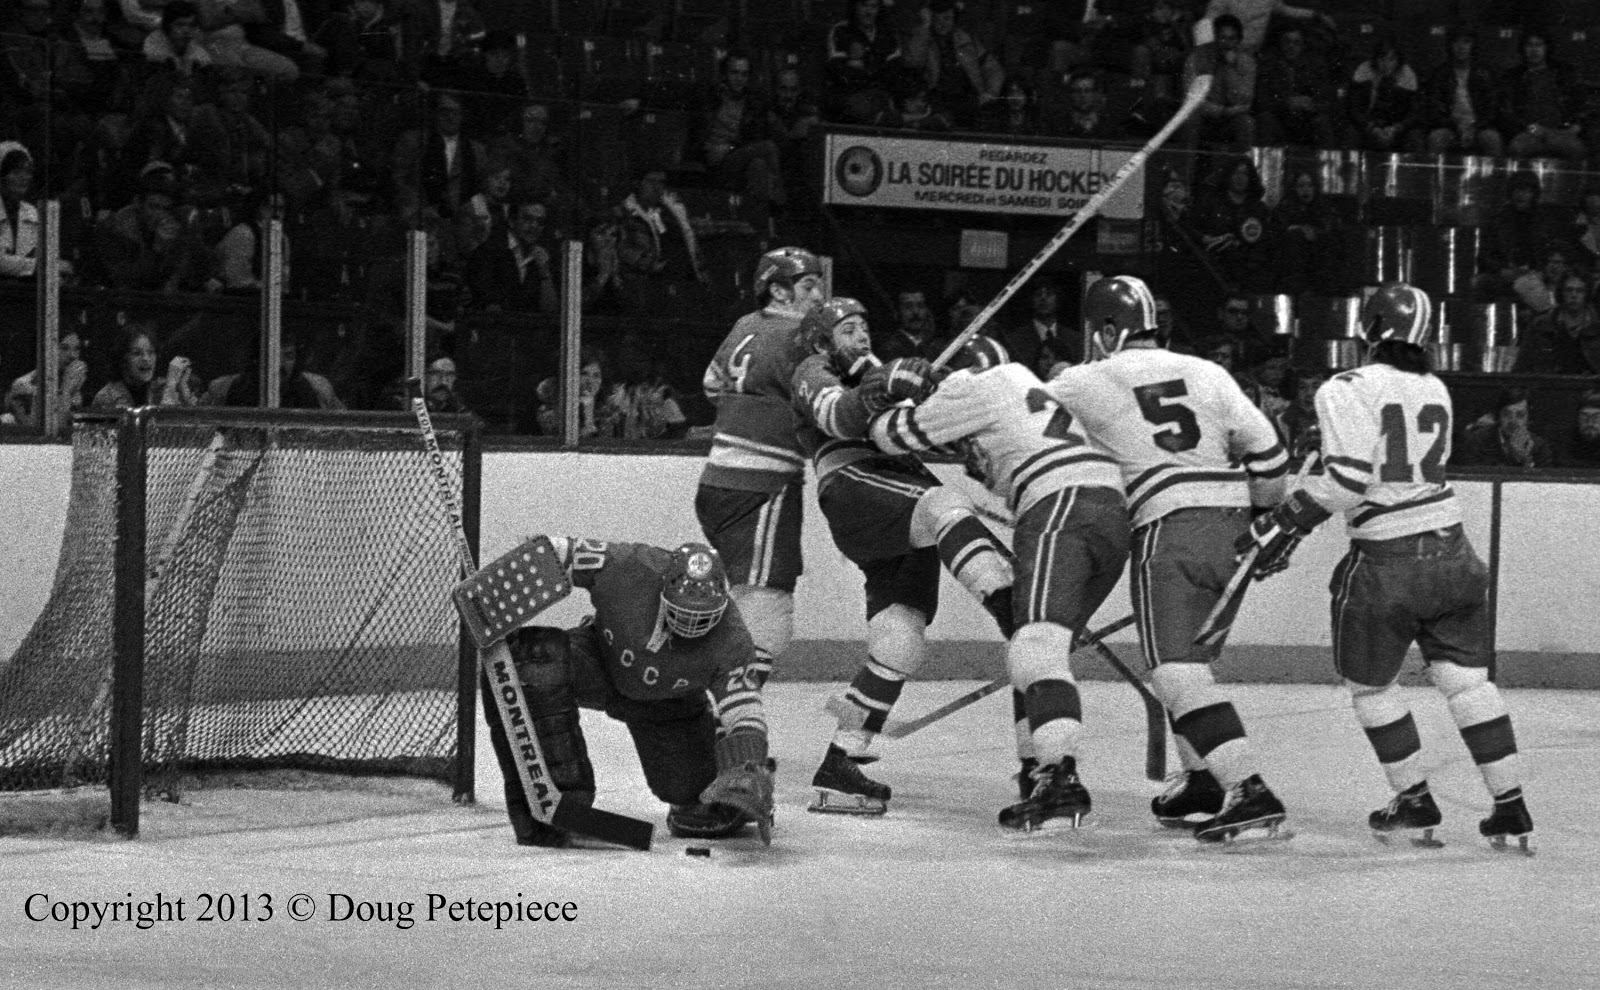 Montreal Juniors vs Soviet Selects, Dec. 1974 3.jpg